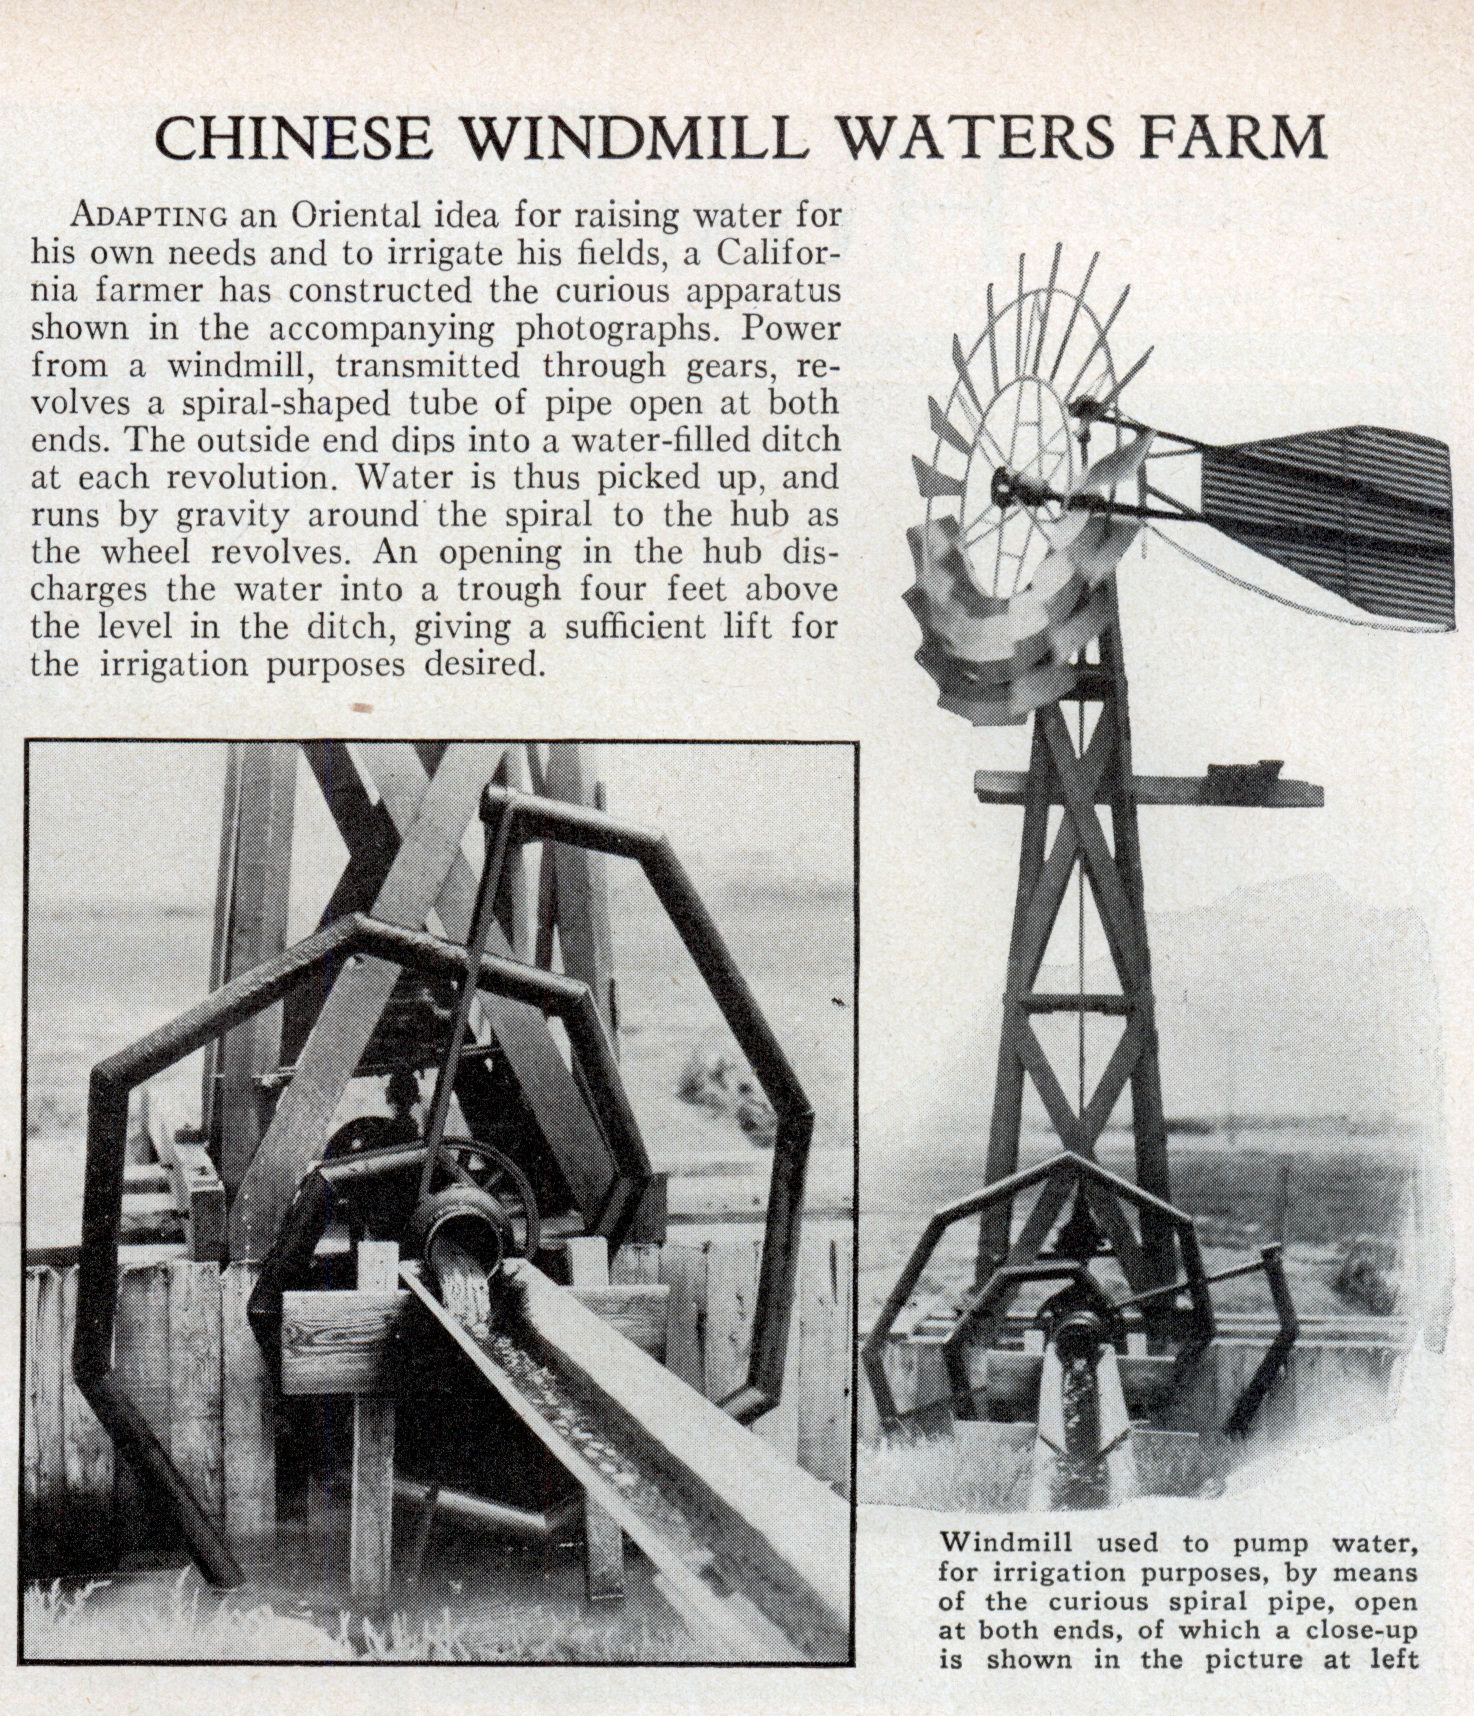 One of the great things about using a windmill for power is that it is a renewable source and one that can be quite effective in taking care of certain aspects of both